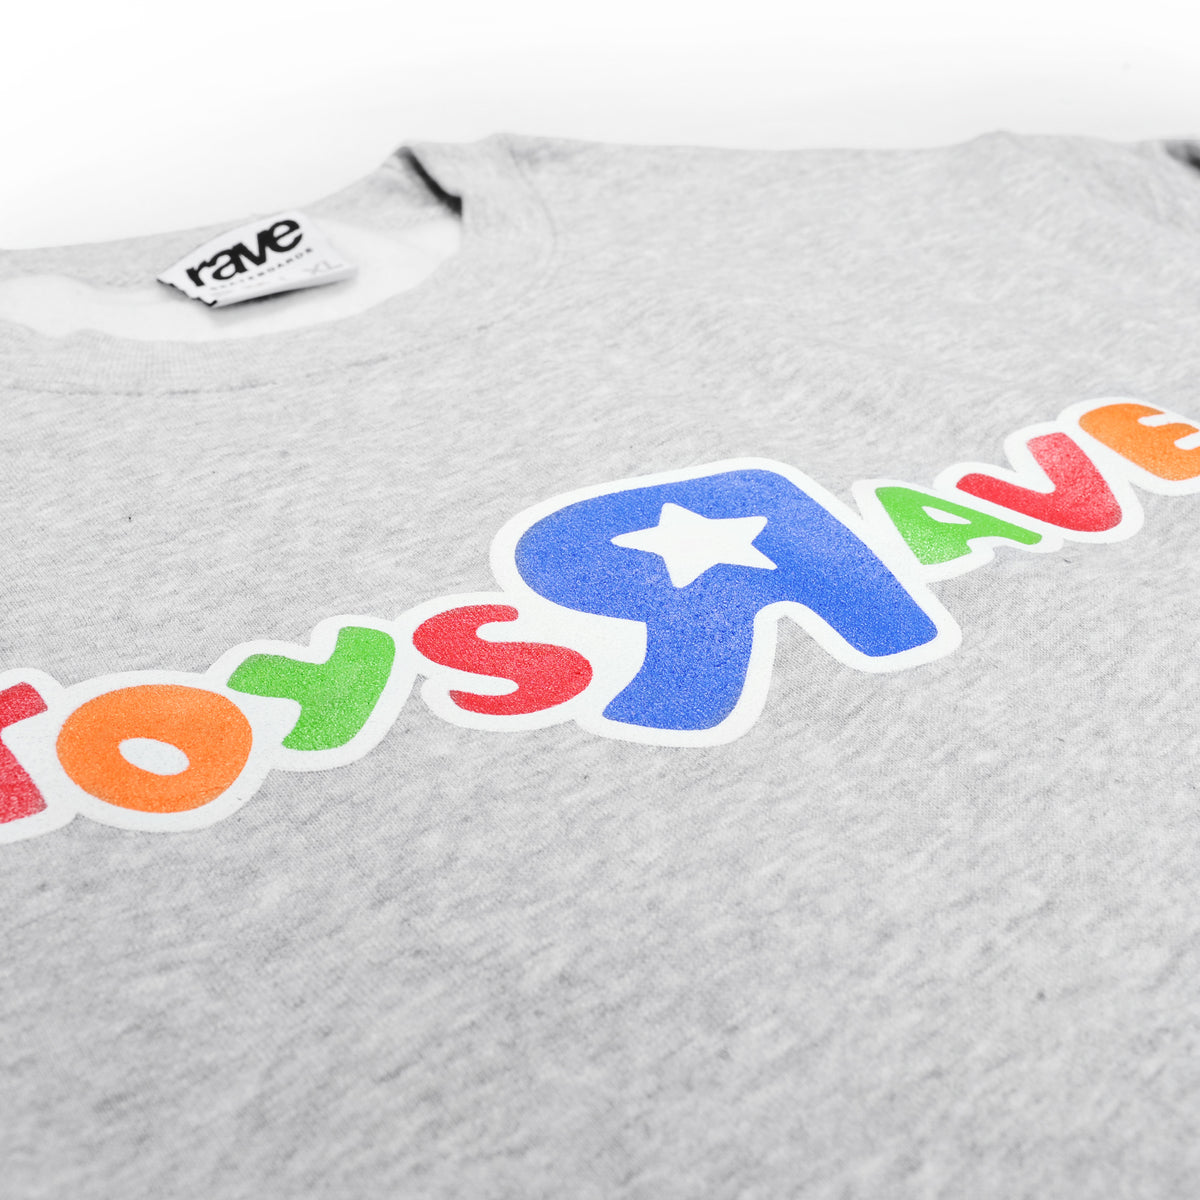 TOYS RAVE grey crewneck - RAVE skateboards